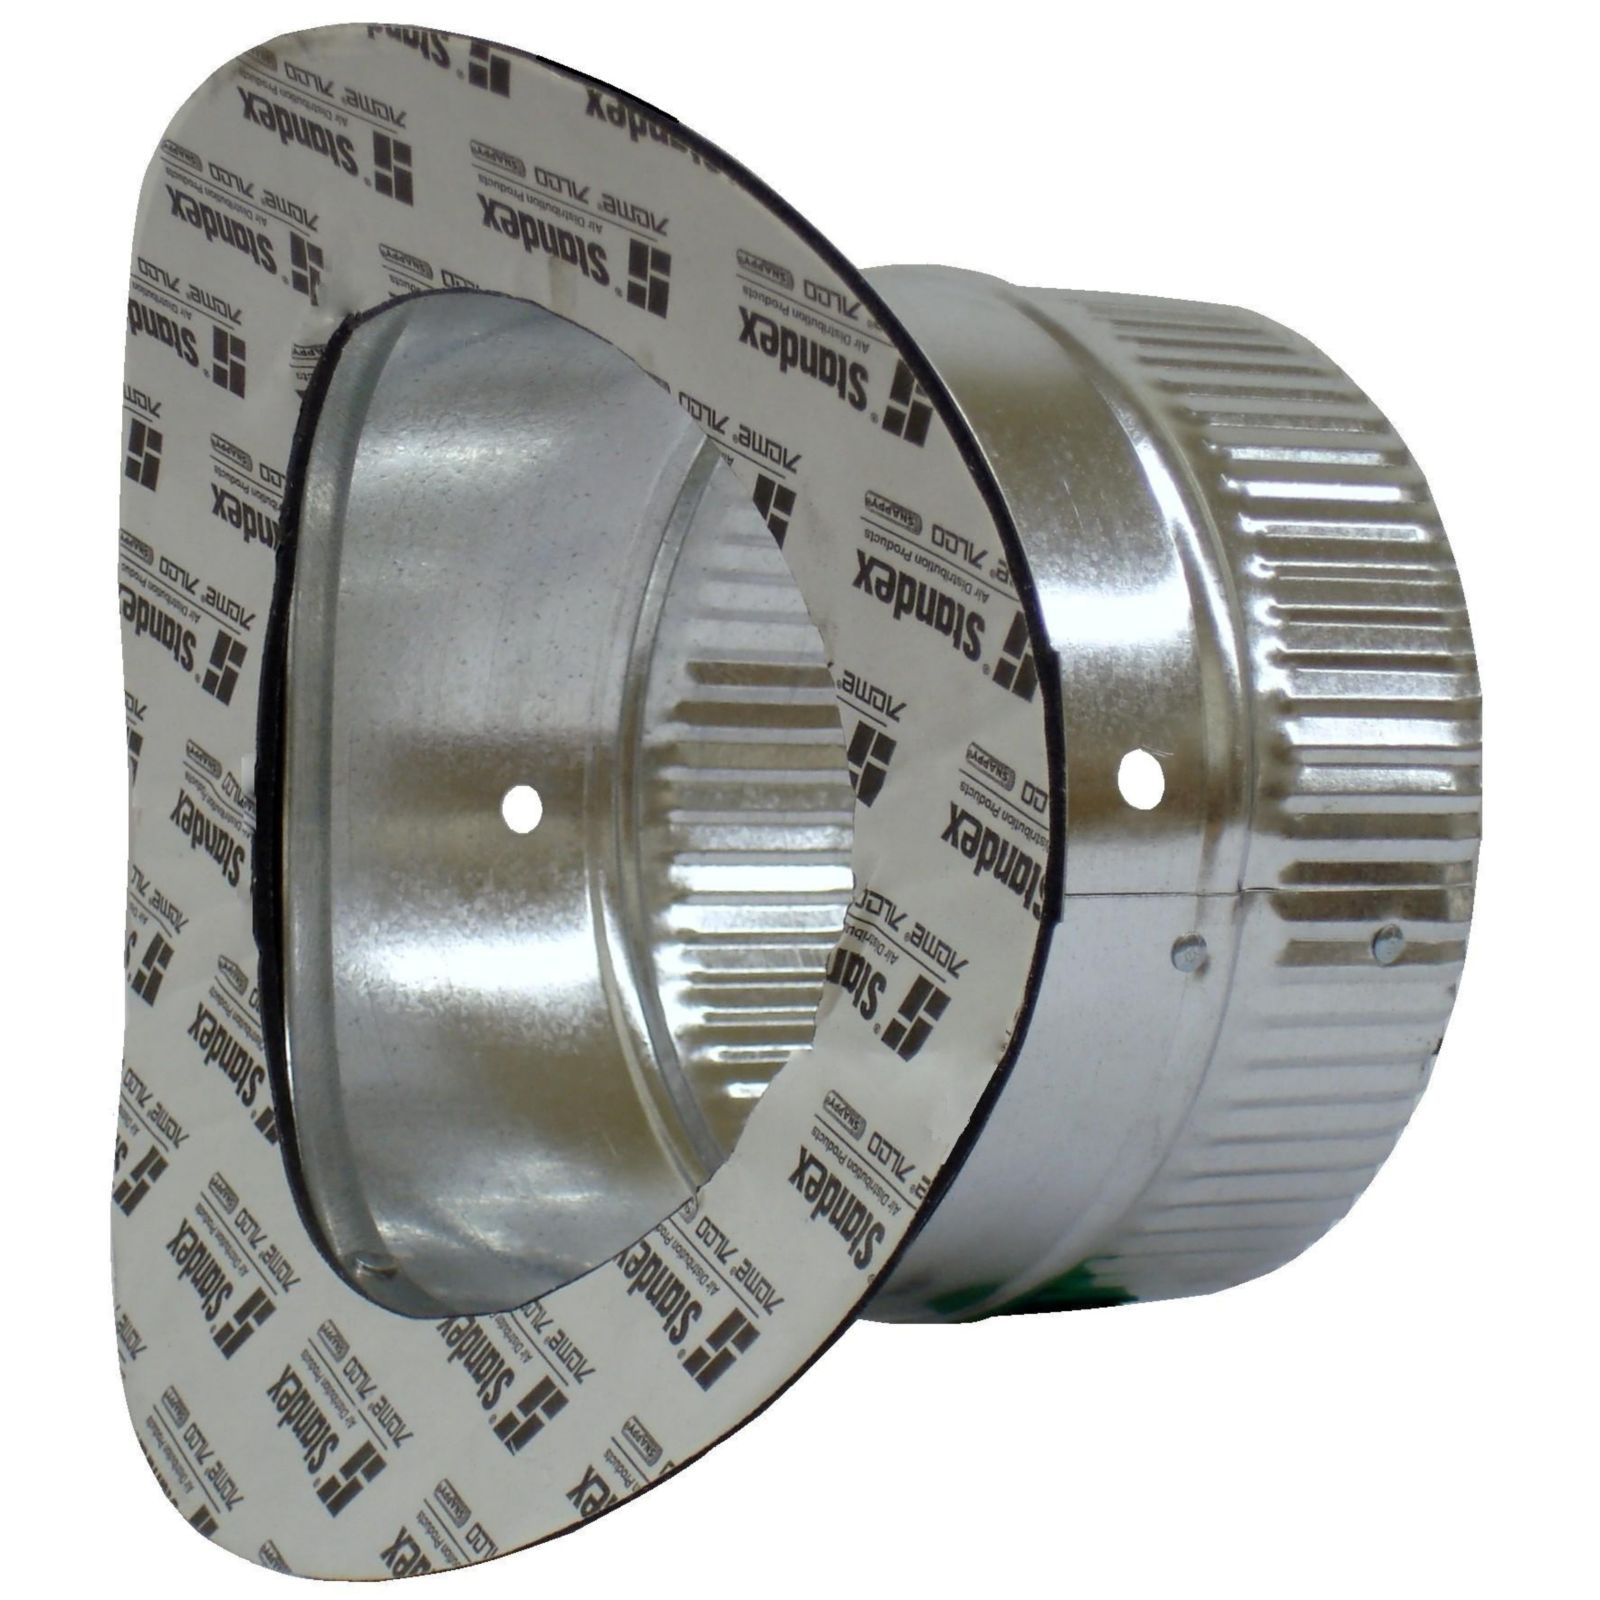 "Snappy 171-8 - #171 - Round Adhesive Takeoff, 6"" Tube Length, 1 1/2"" Flange, for 8"" Round Pipe, 26 Gauge"